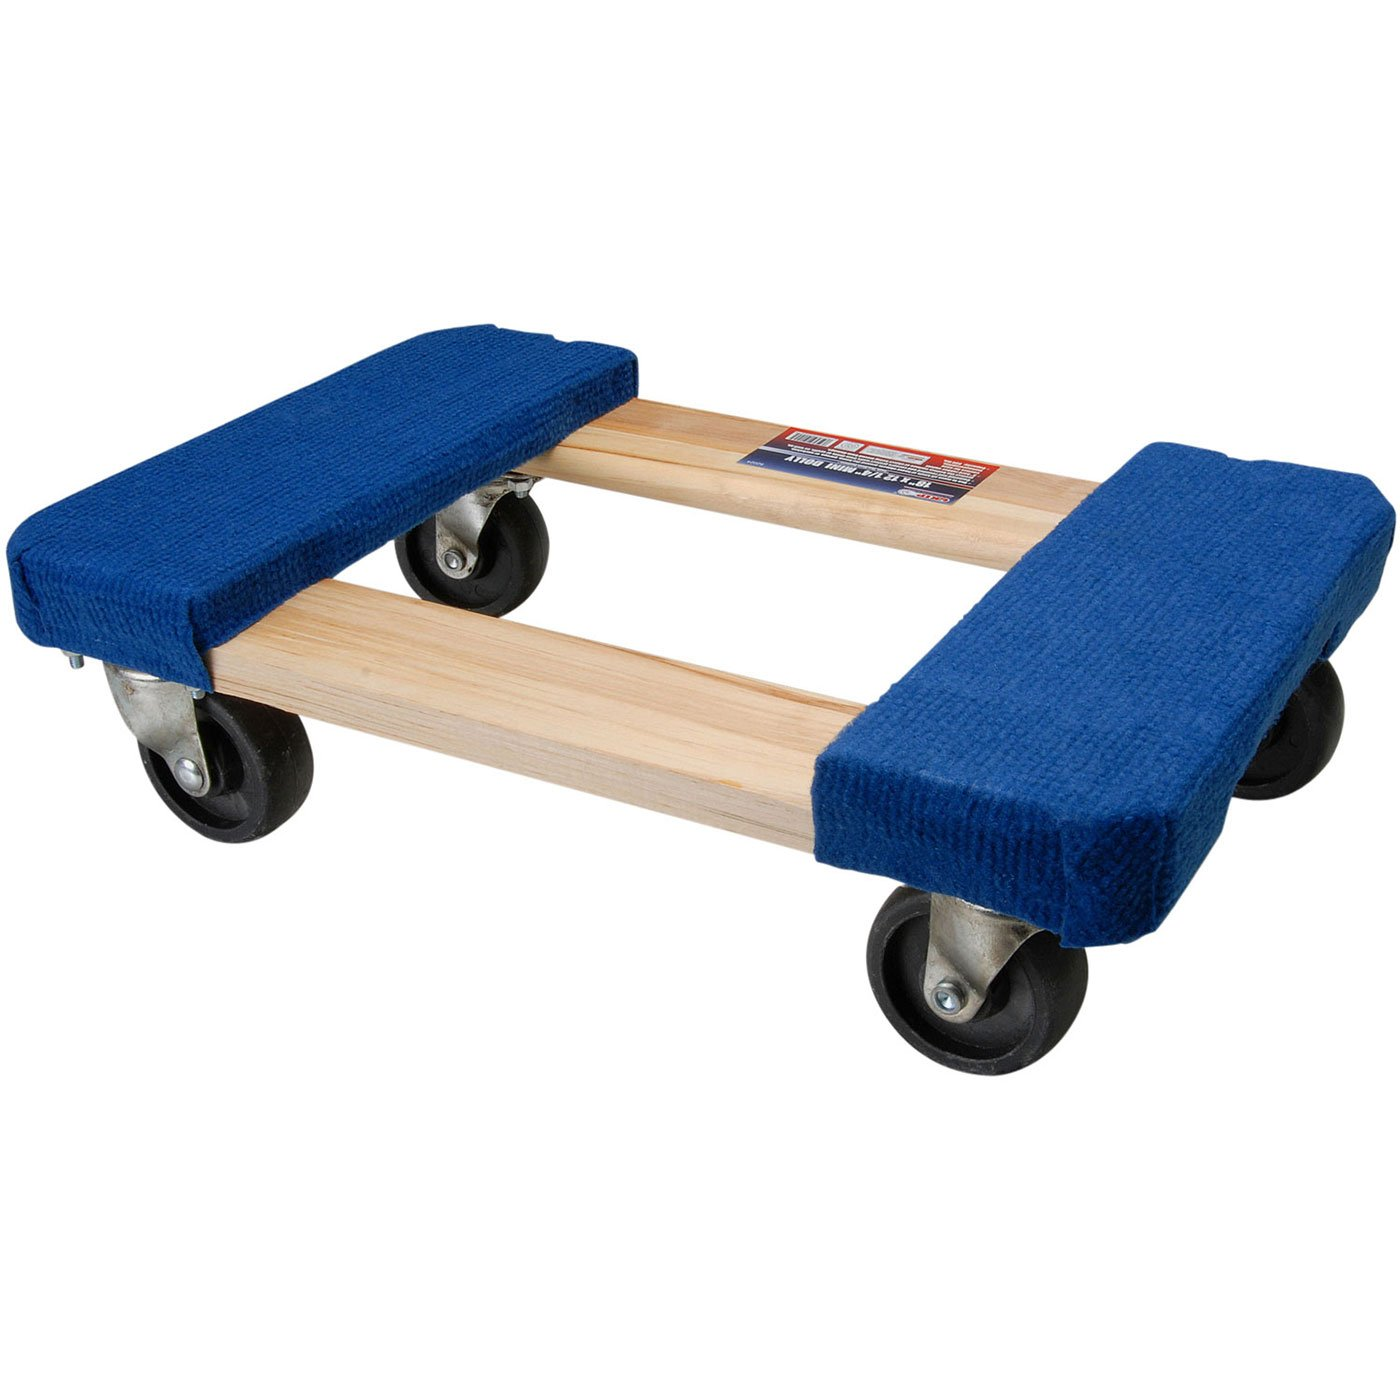 GRIP 52024 18'' x 12'' Carpeted Movers Dolly by Grip